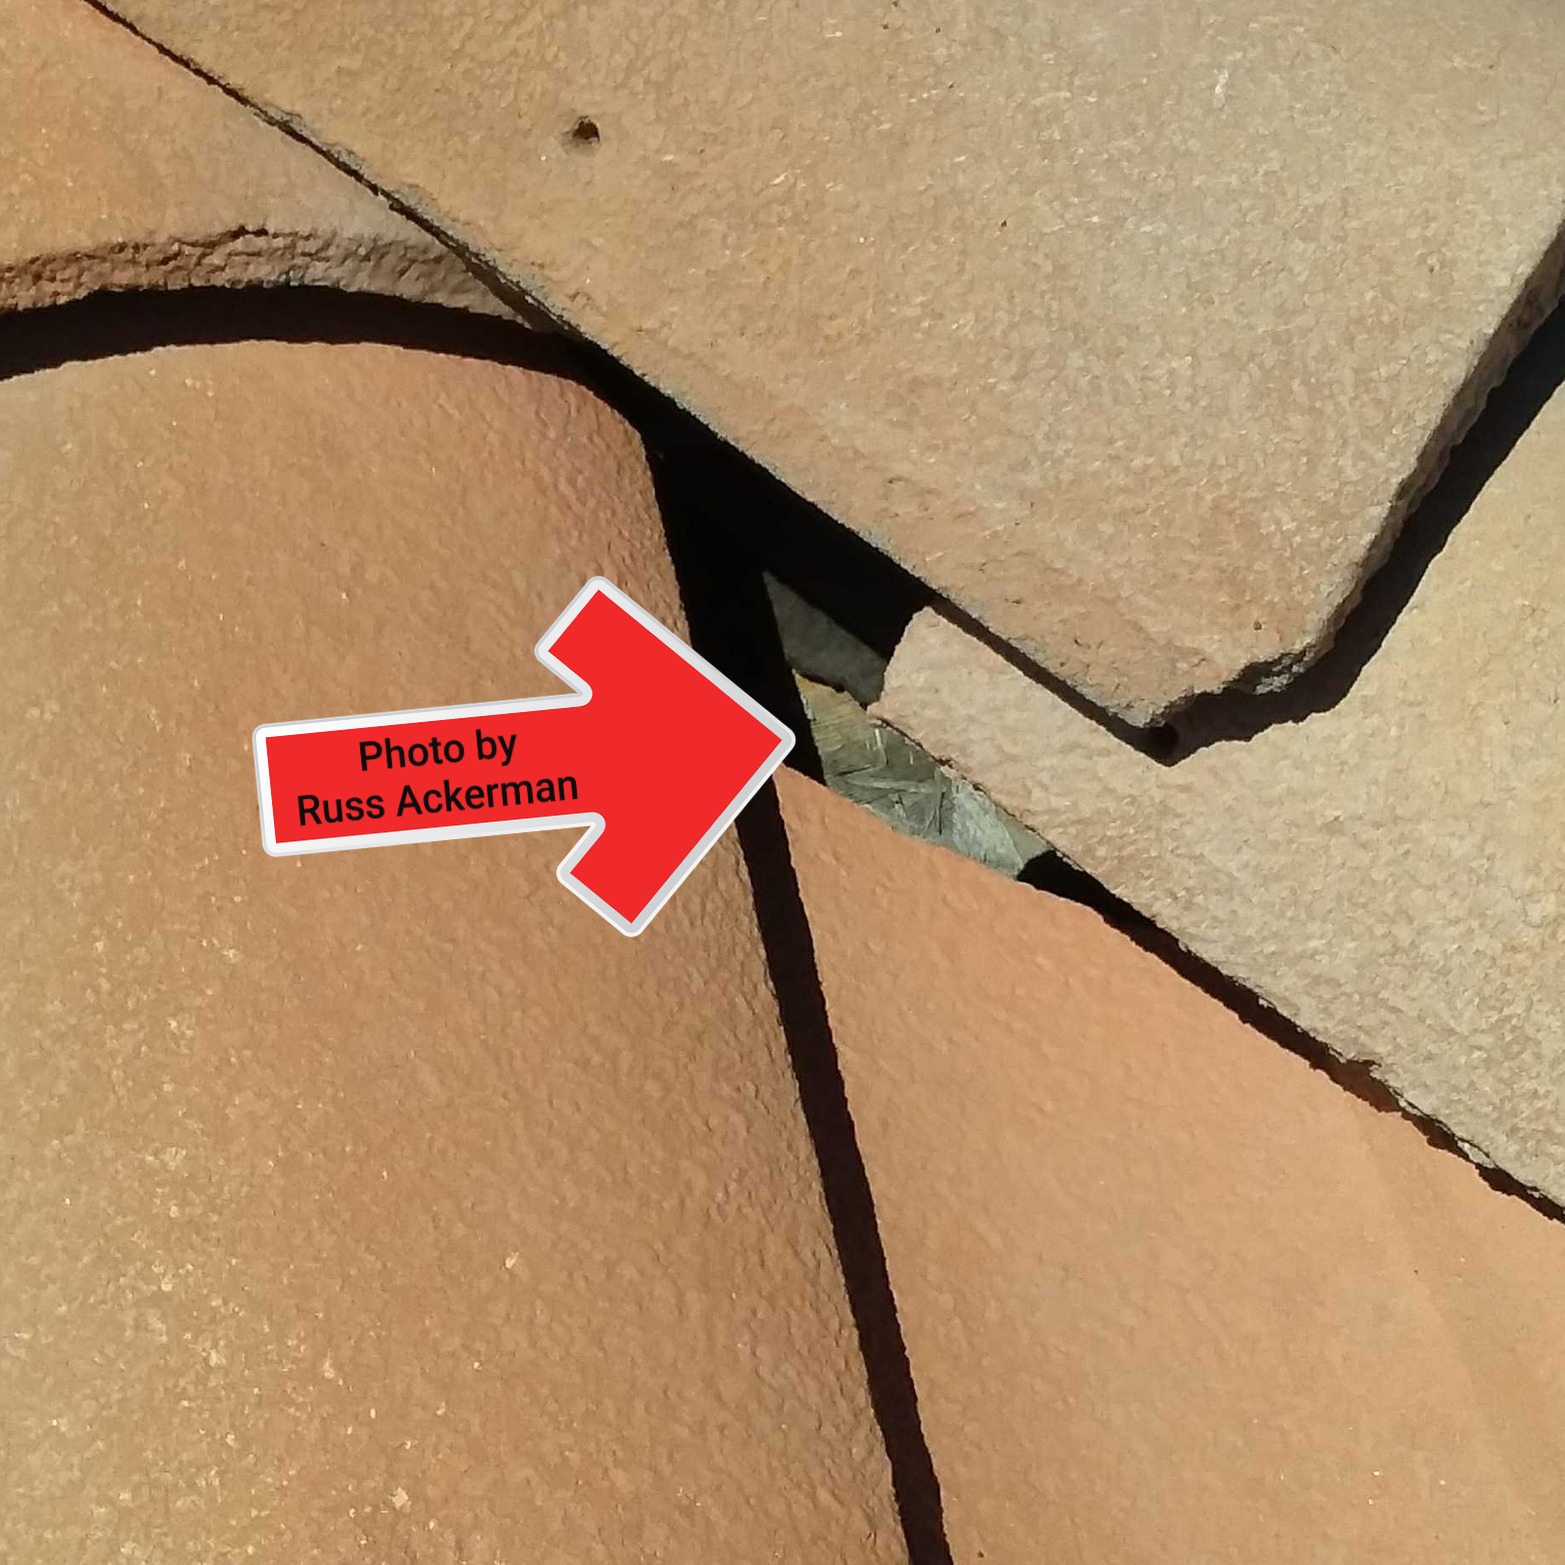 Yes, that is exposed roof sheathing at this roof hip. The roof deck will absorbing water every time it rains and leaking is inevitable.